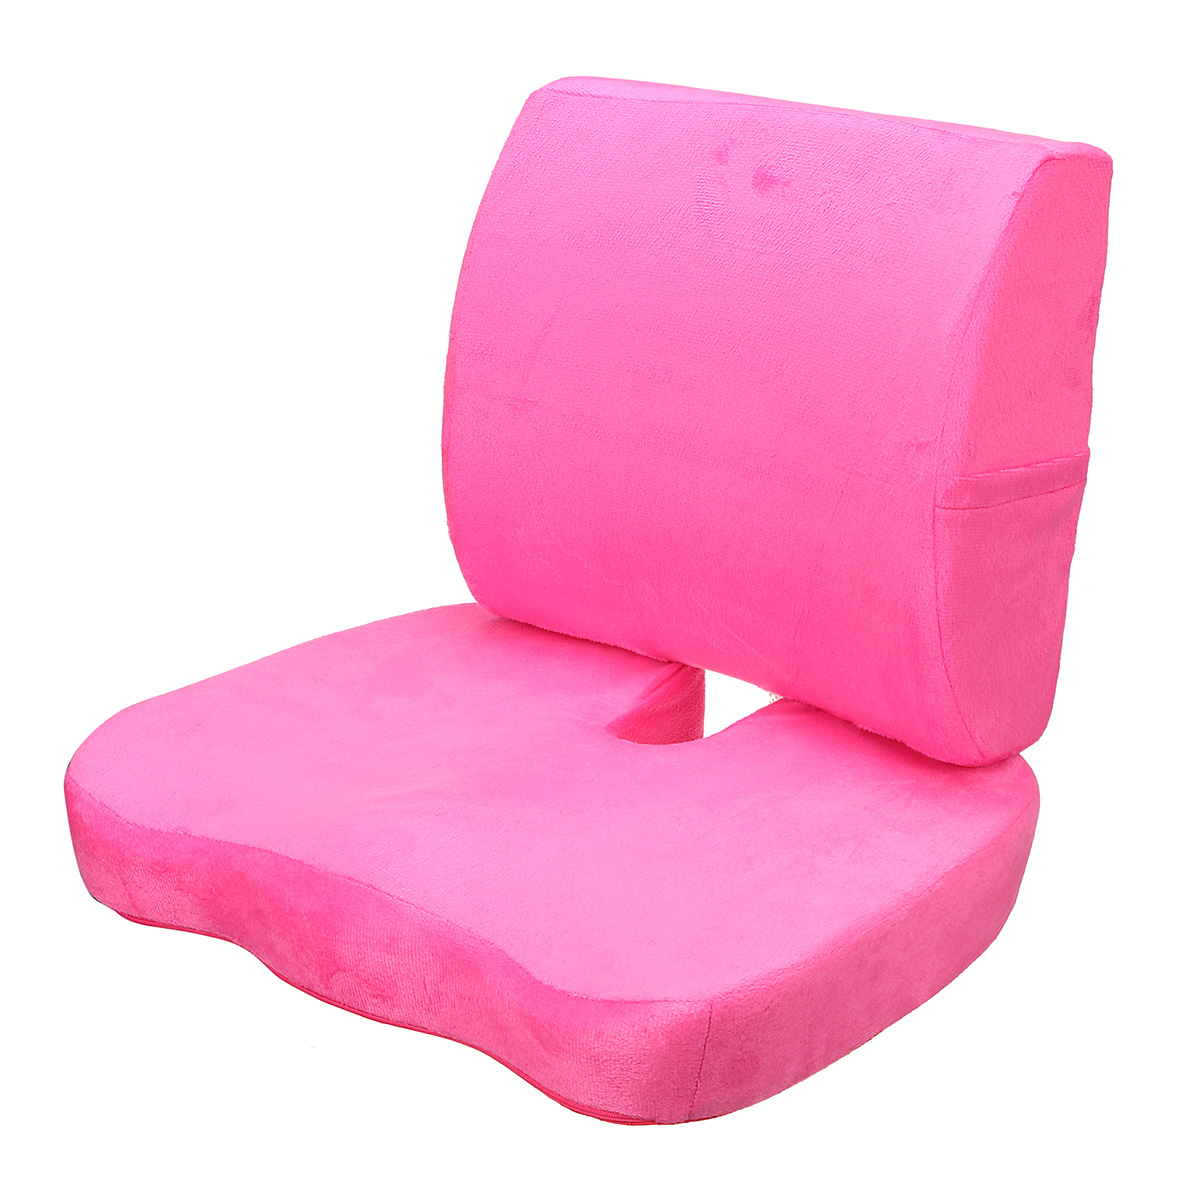 Memory Foam Seat Cushion Breathable Lumbar Back Support Orthoped Waist Protection Home Office Car Chair Seat Pad Pain Stress Relief Mat